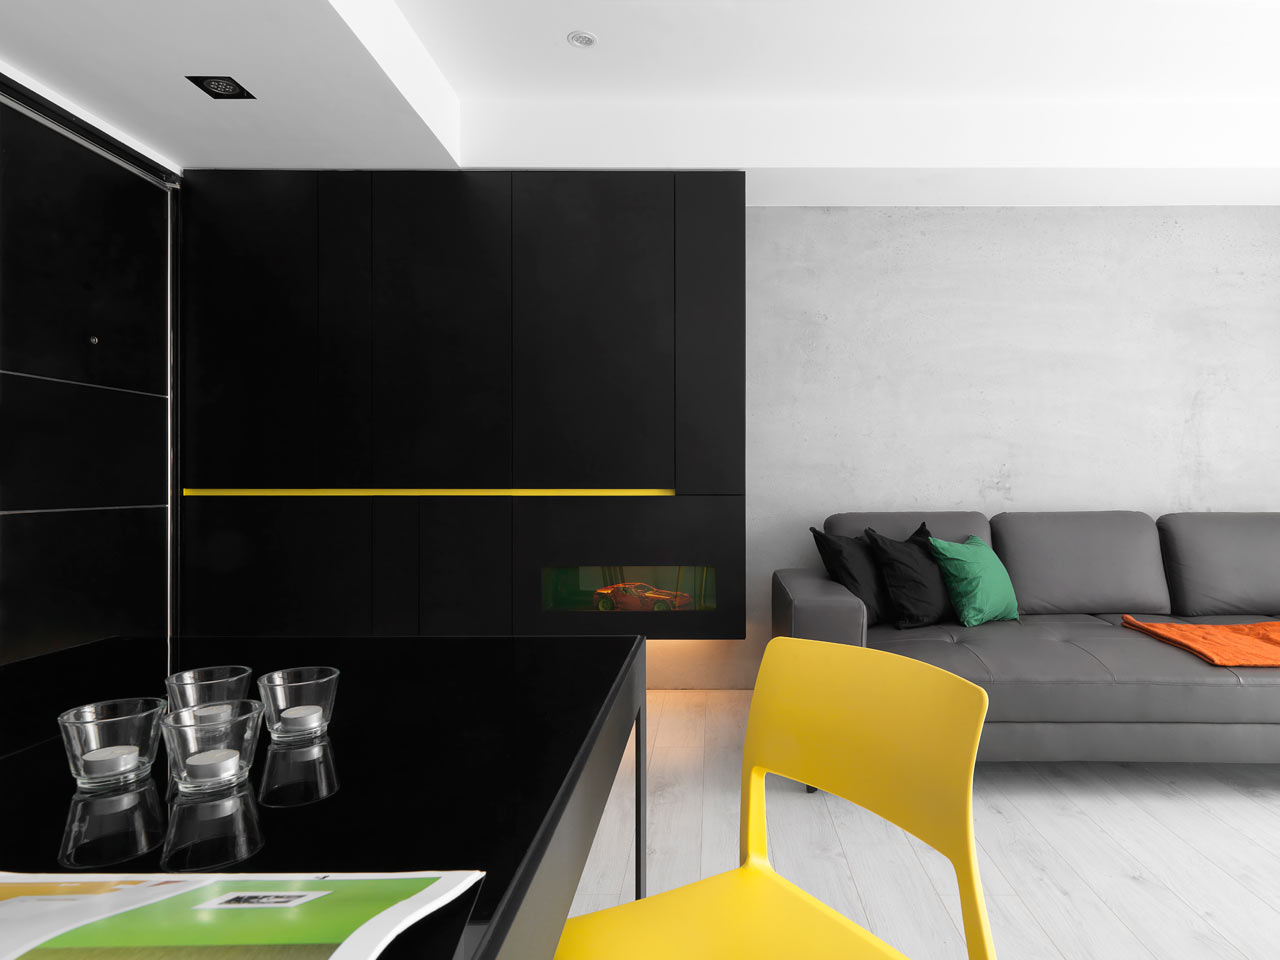 taichung h residence Modern Apartment with Bright Yellow Accents